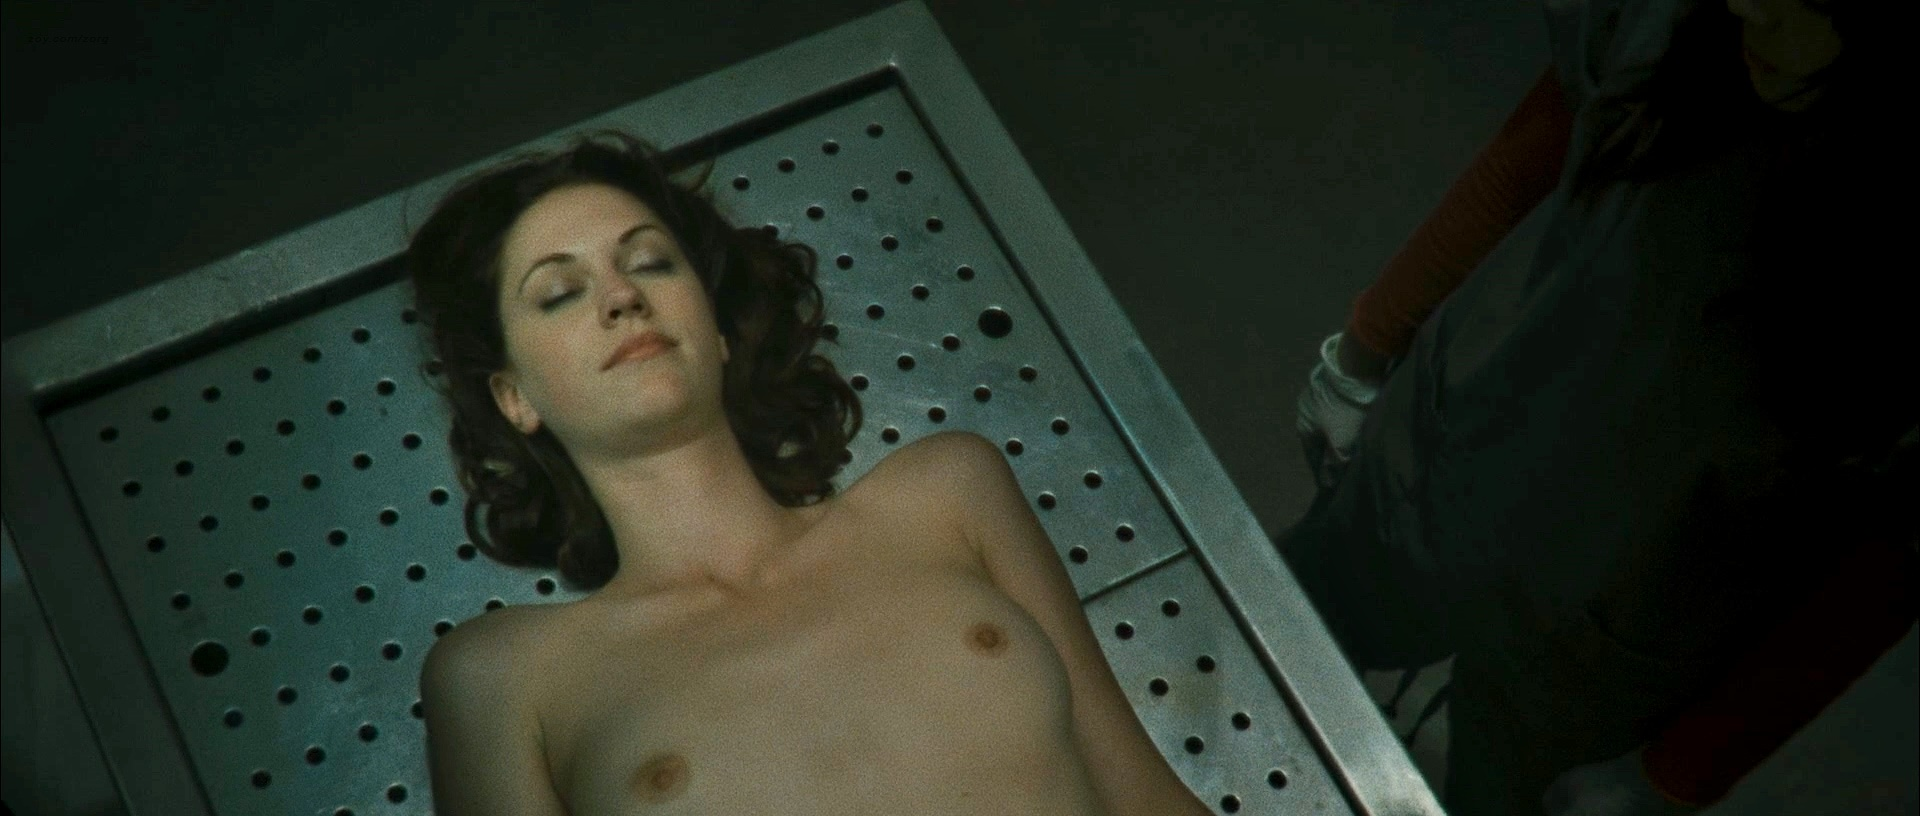 Alyssa Milano nude and bush and Lauren Lee Smith nude topless and sex - Pathology (2008) hd720/1080p (3)